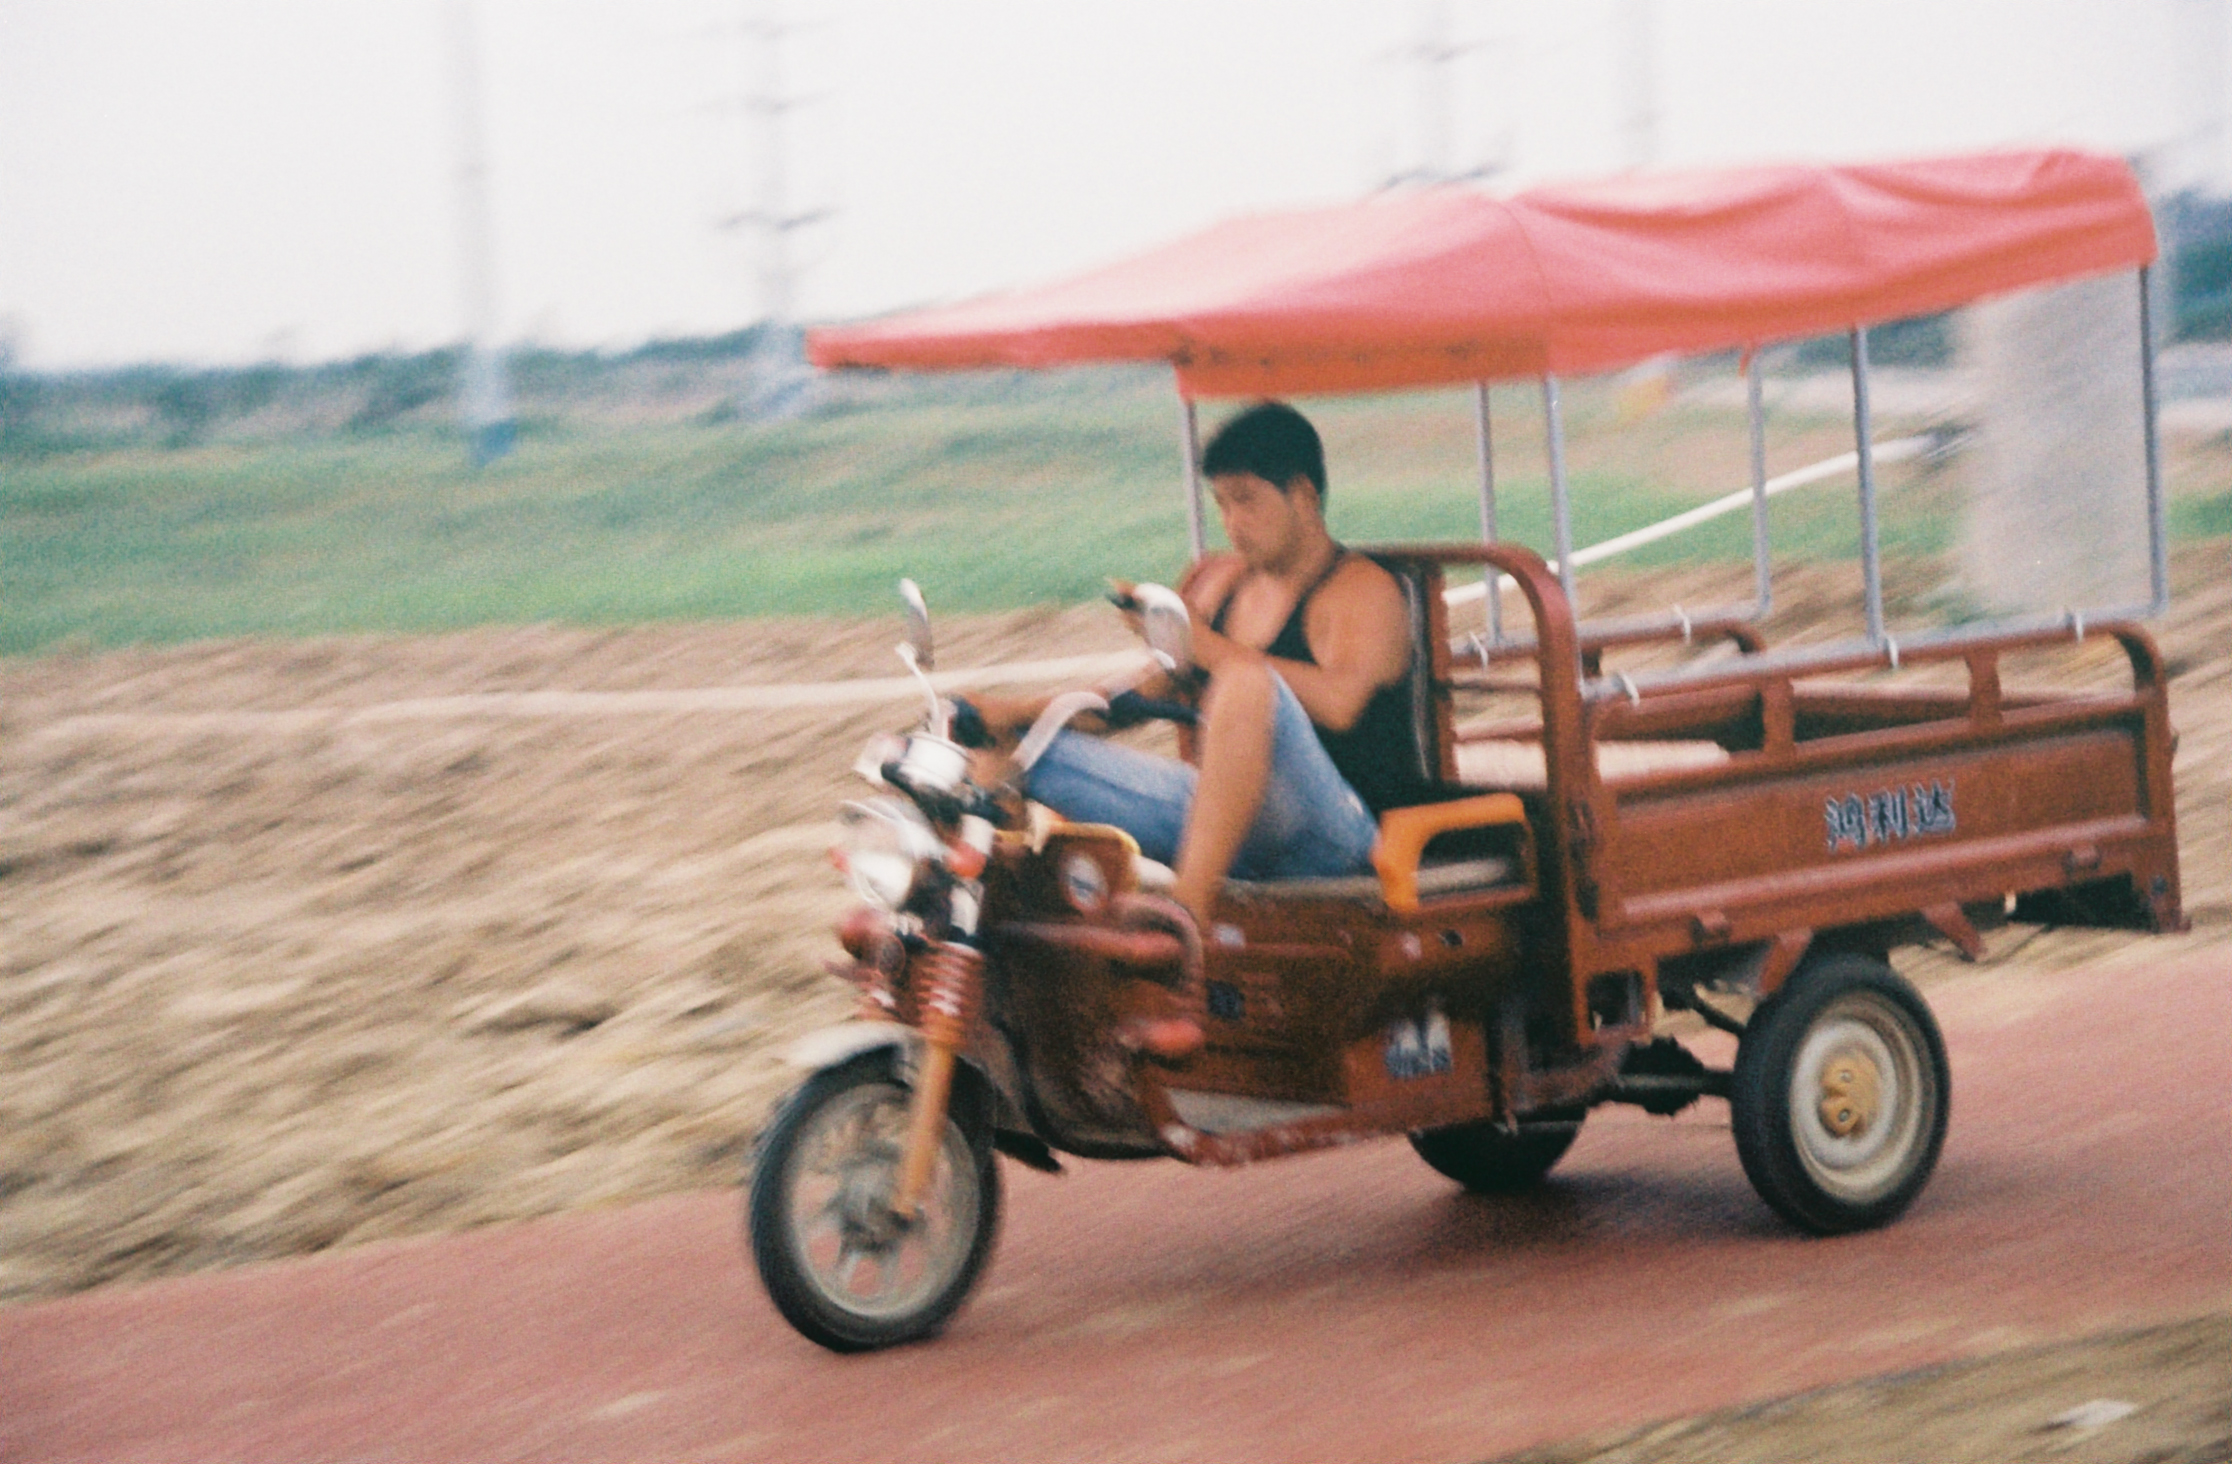 countryside outside of xi'an. man hustling.